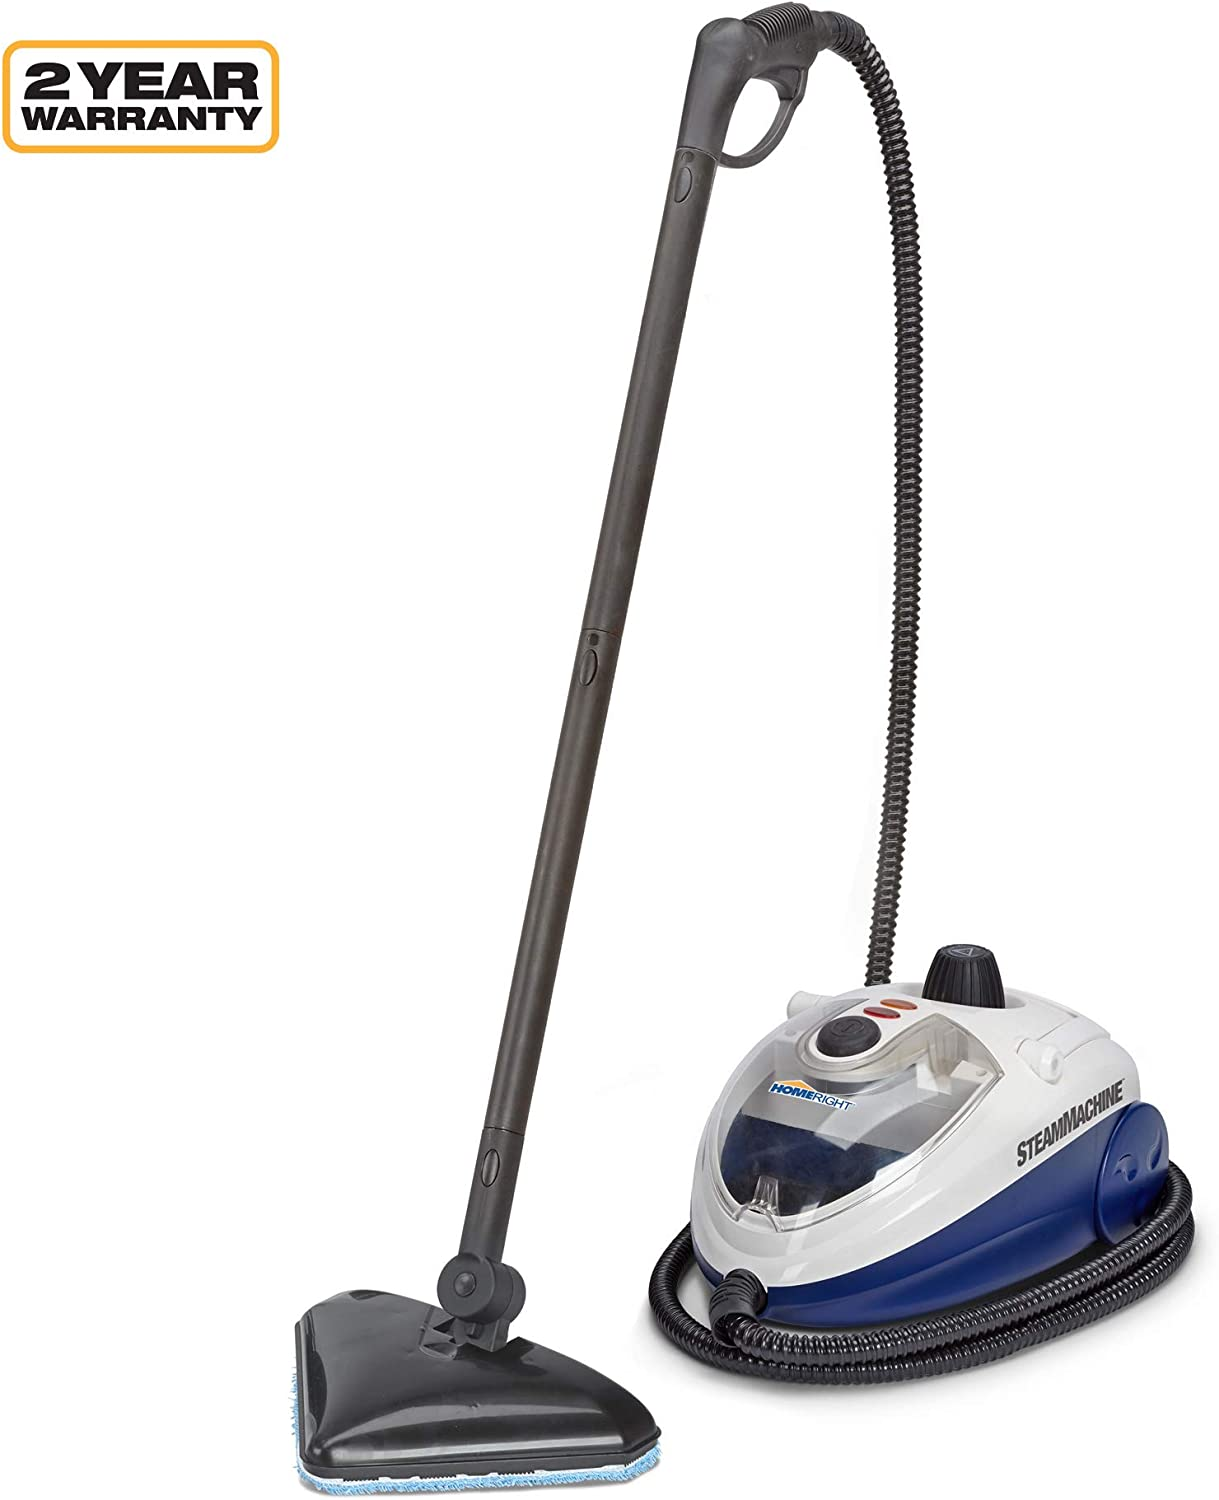 Hose Accessories and Pieces Portable Steam Cleaner w// 8 ft Microfiber Towel